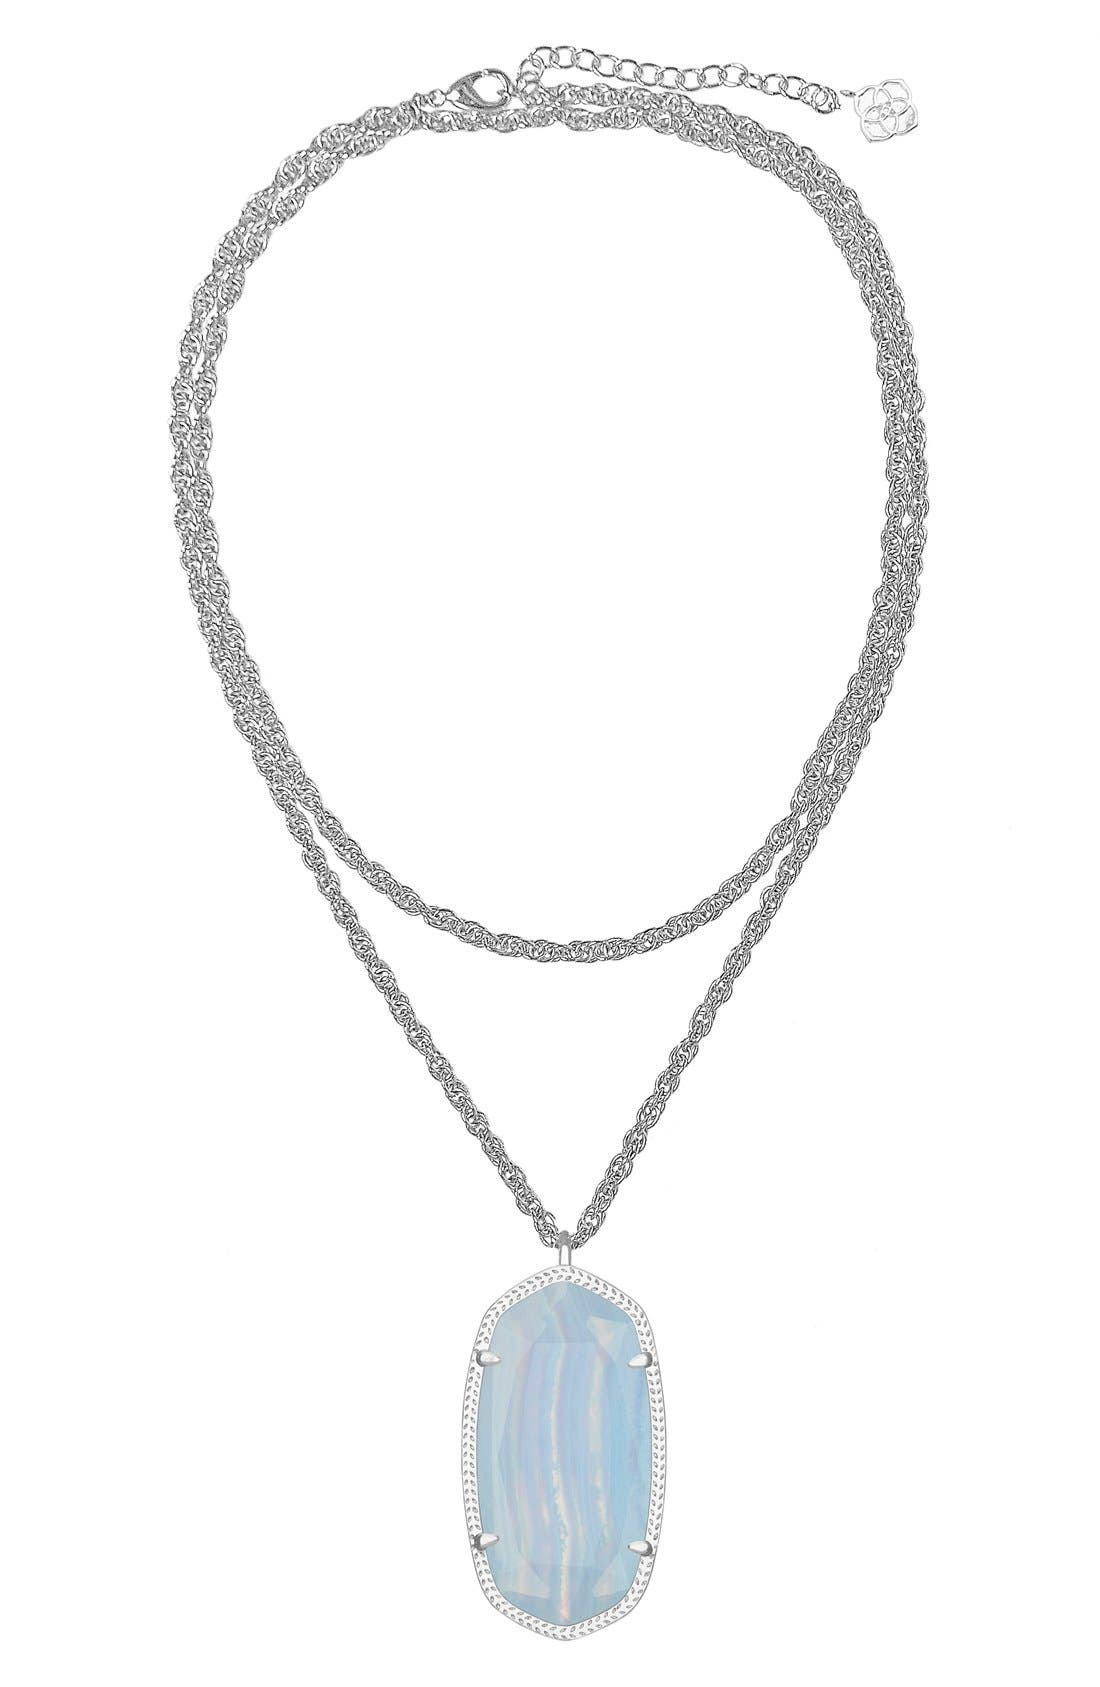 Alternate Image 1 Selected - Kendra Scott 'Rae' Long Pendant Necklace